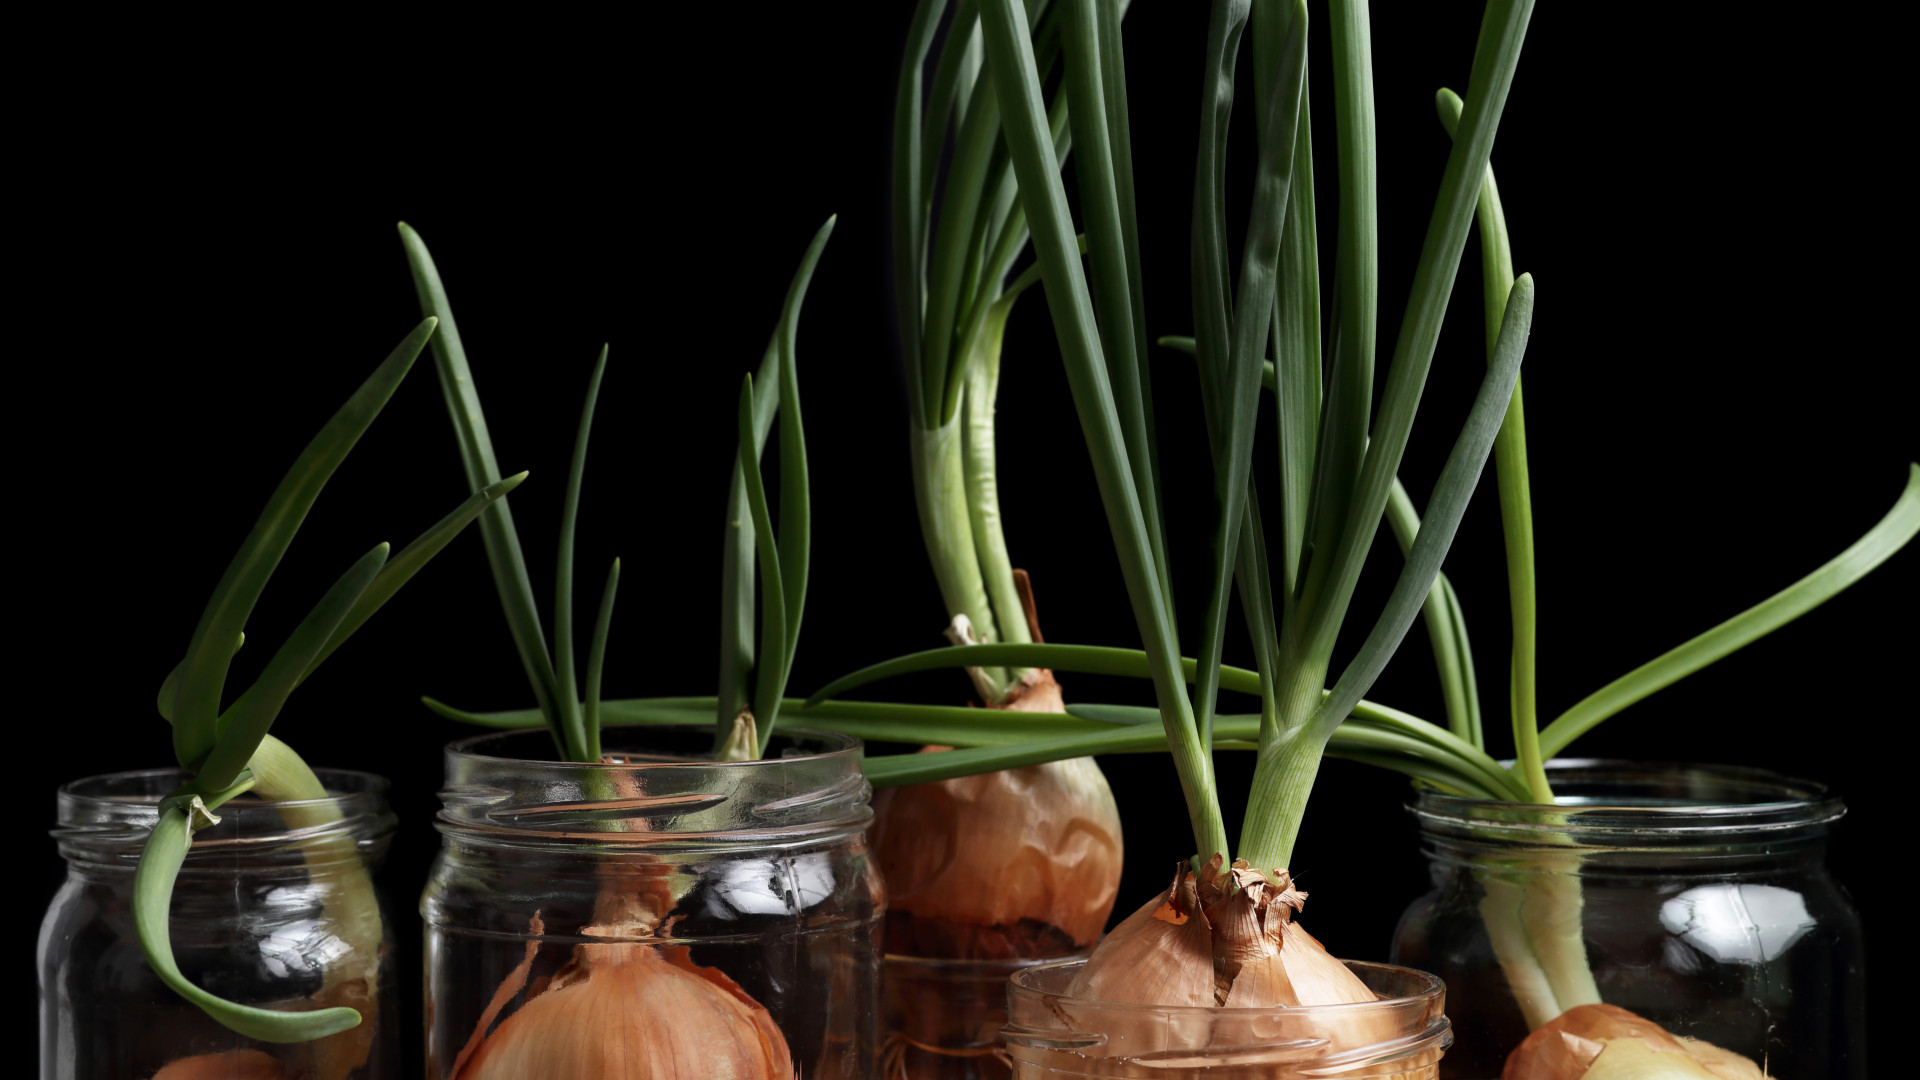 Onions sprouting